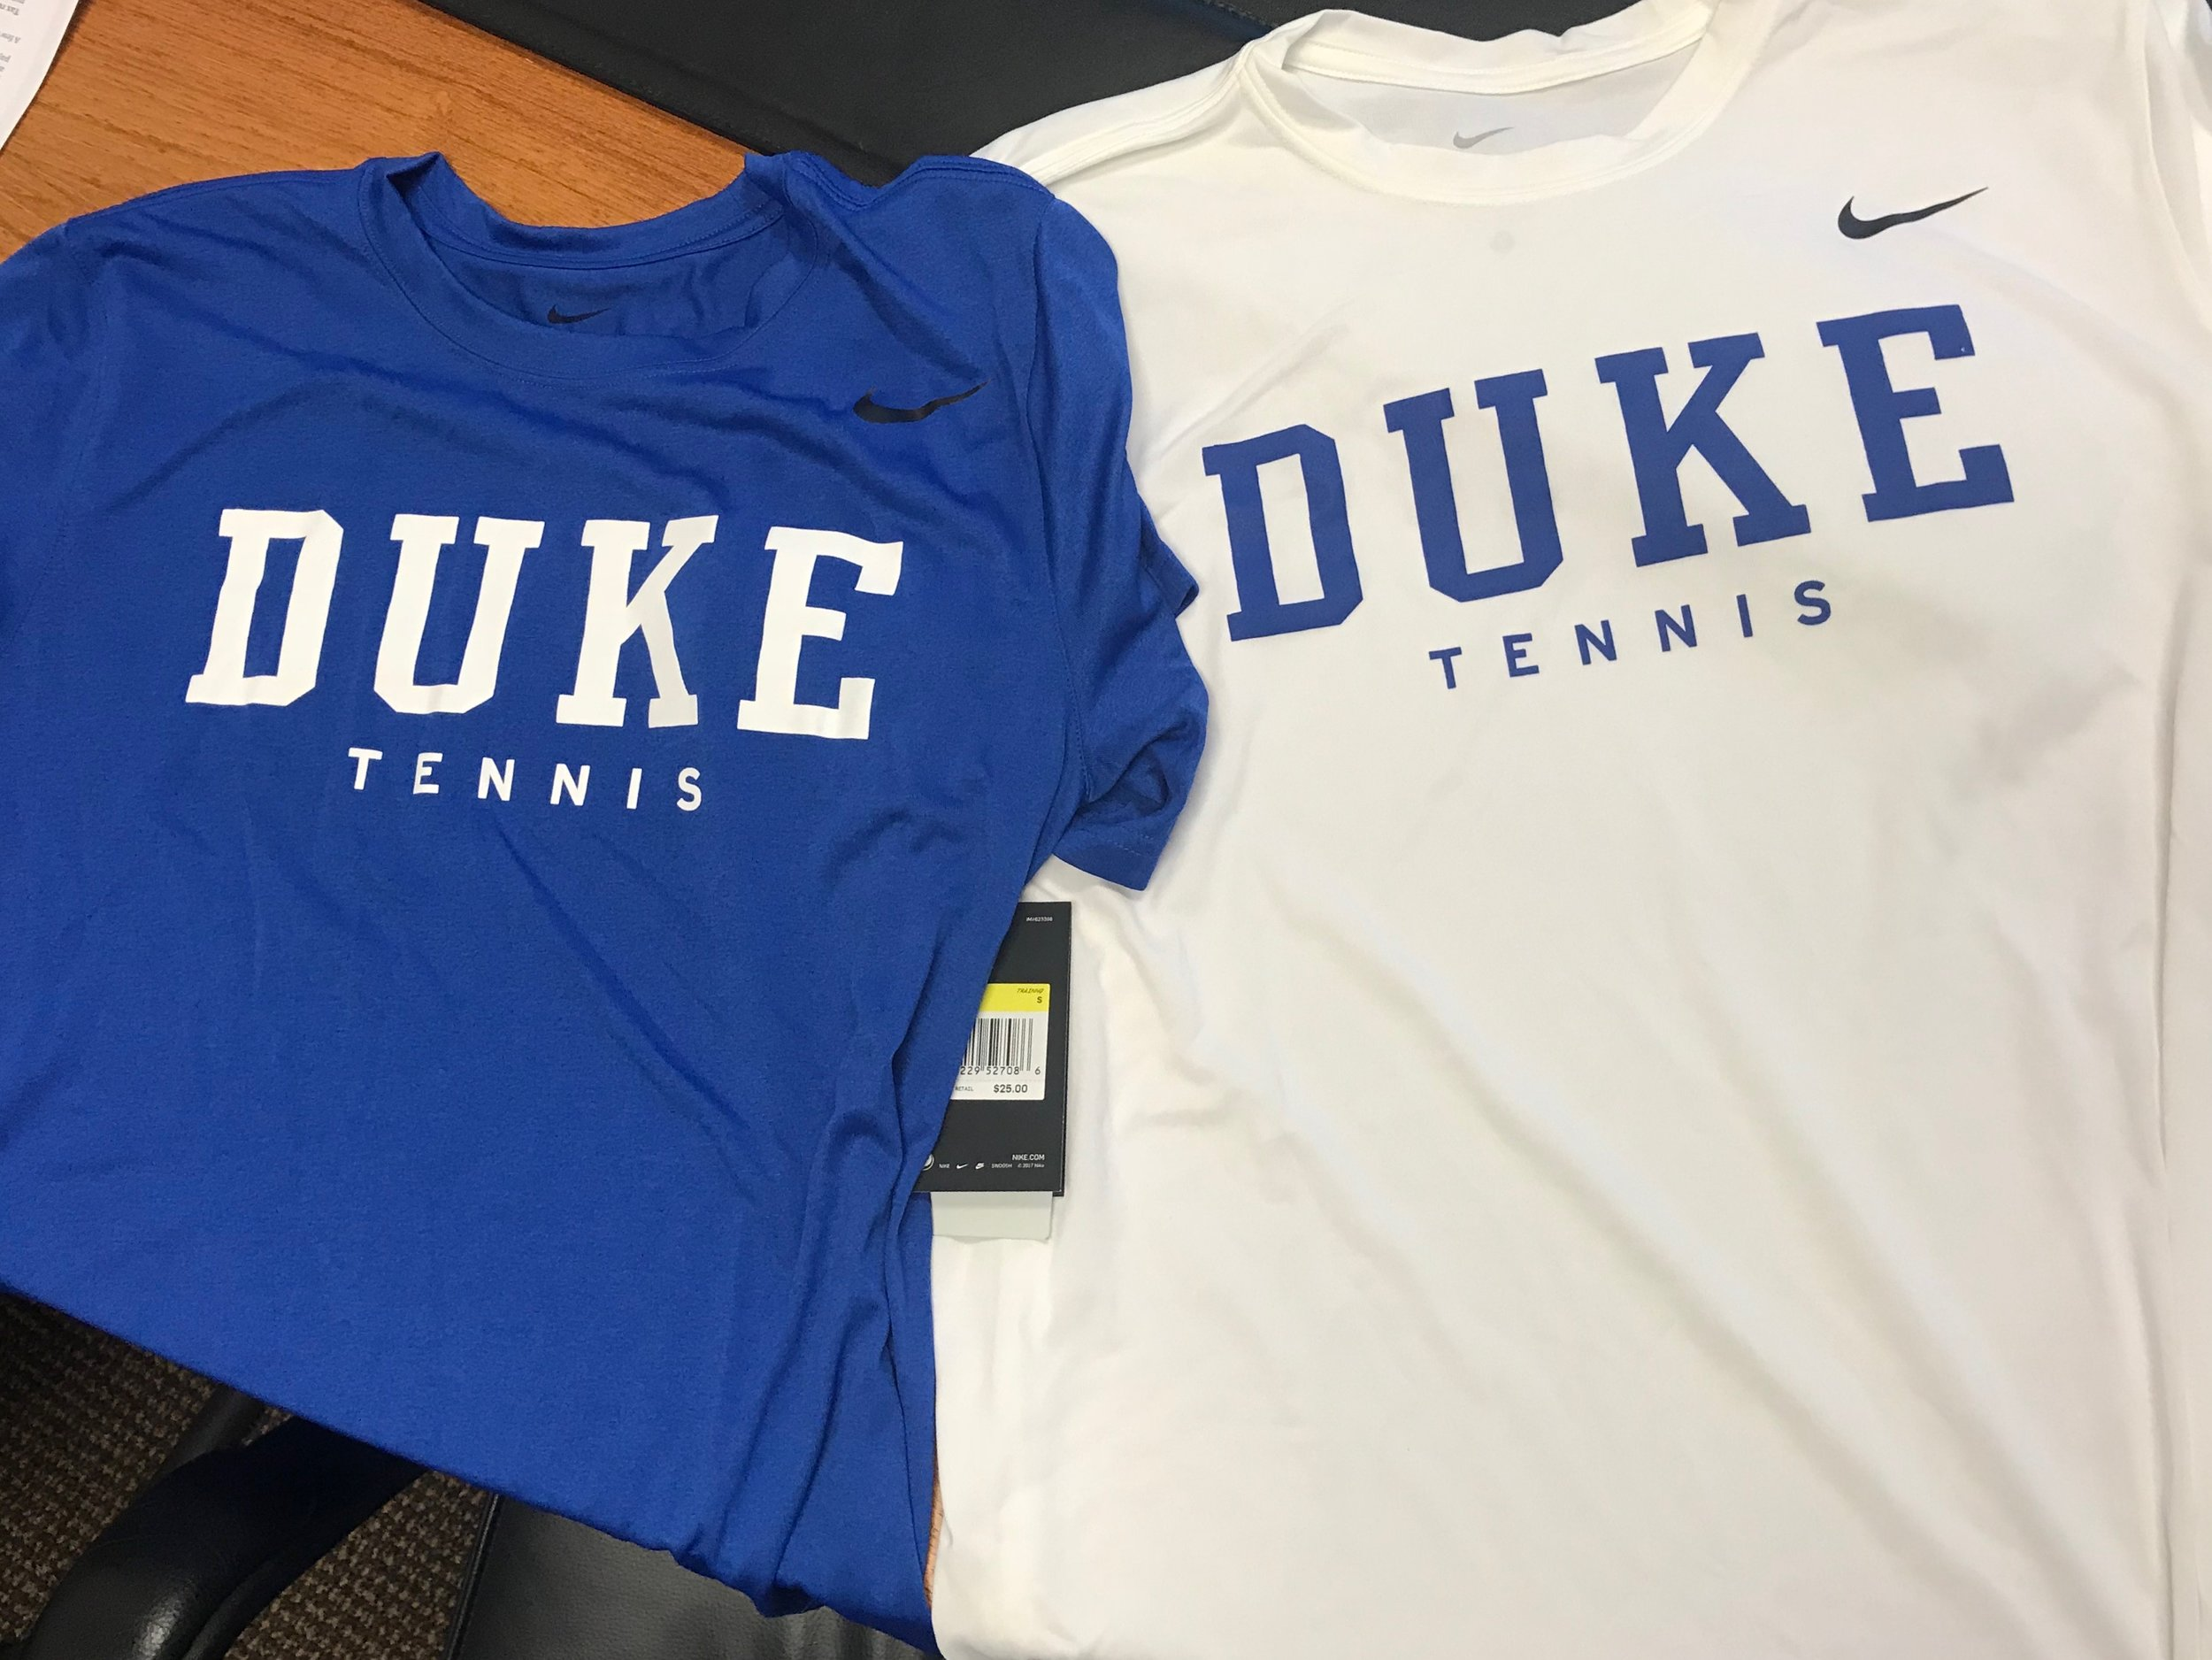 Nike Duke Tennis Tees